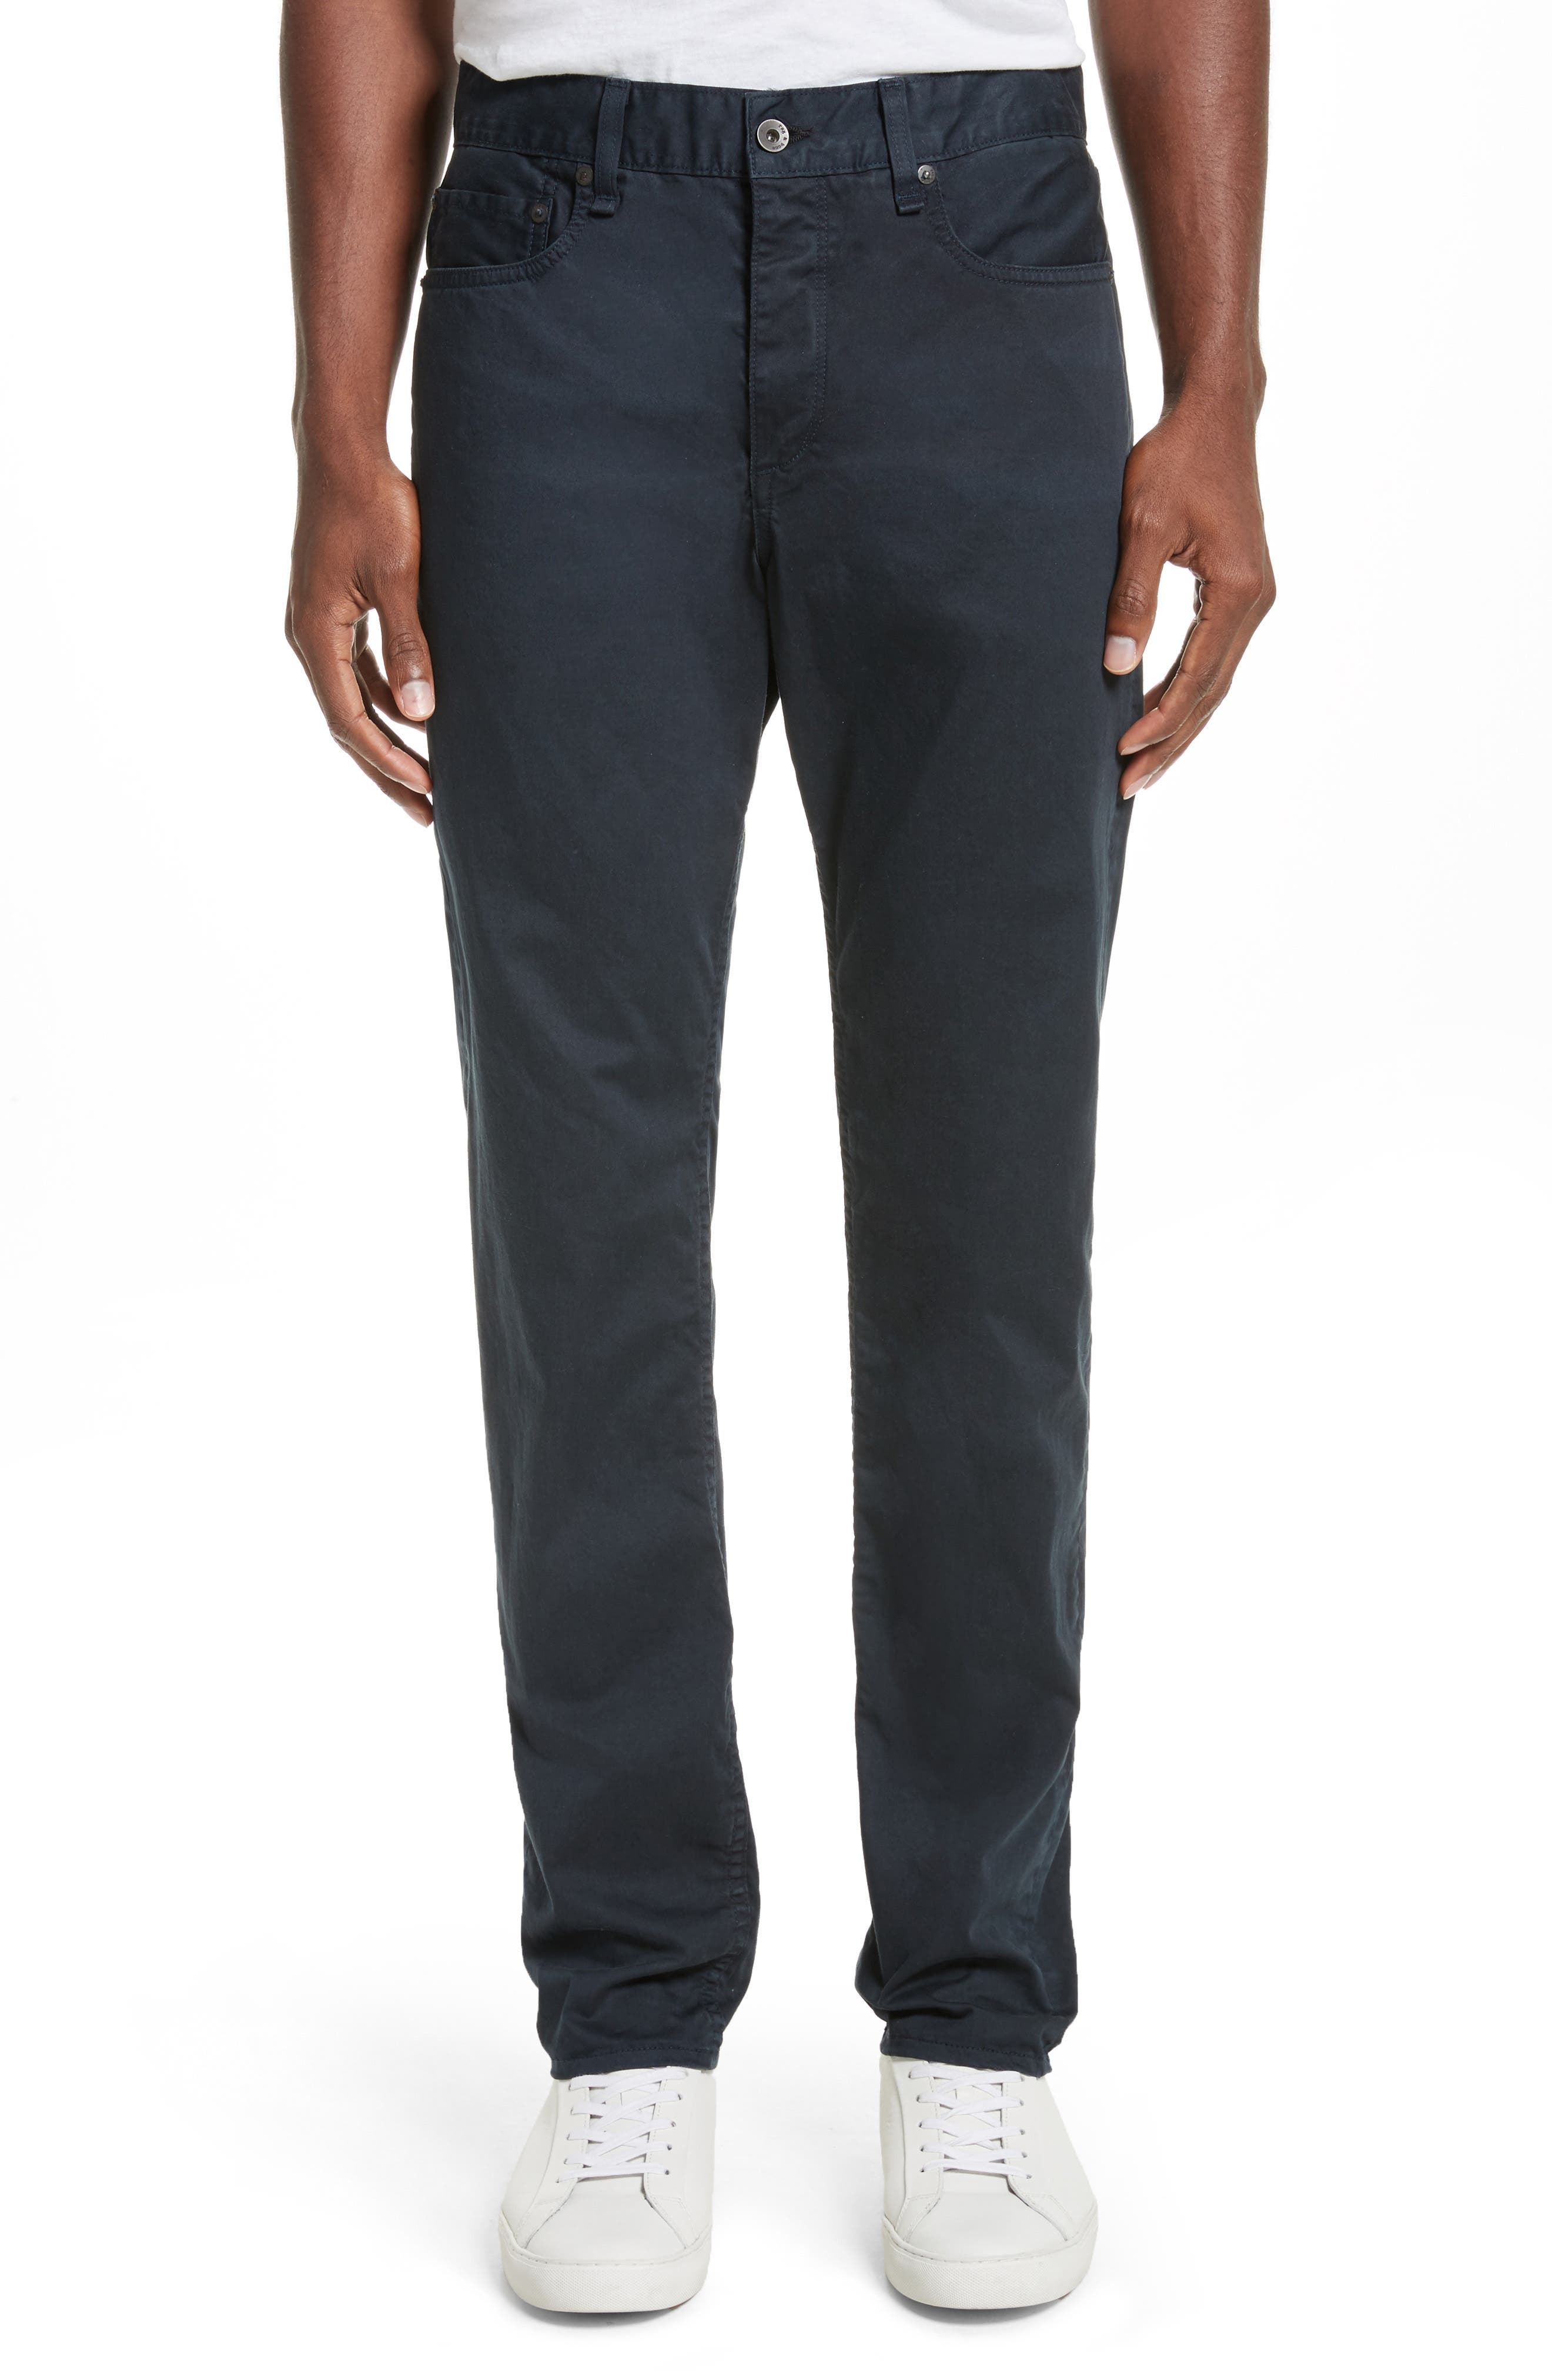 Fit 3 Twill Pants,                         Main,                         color, Navy